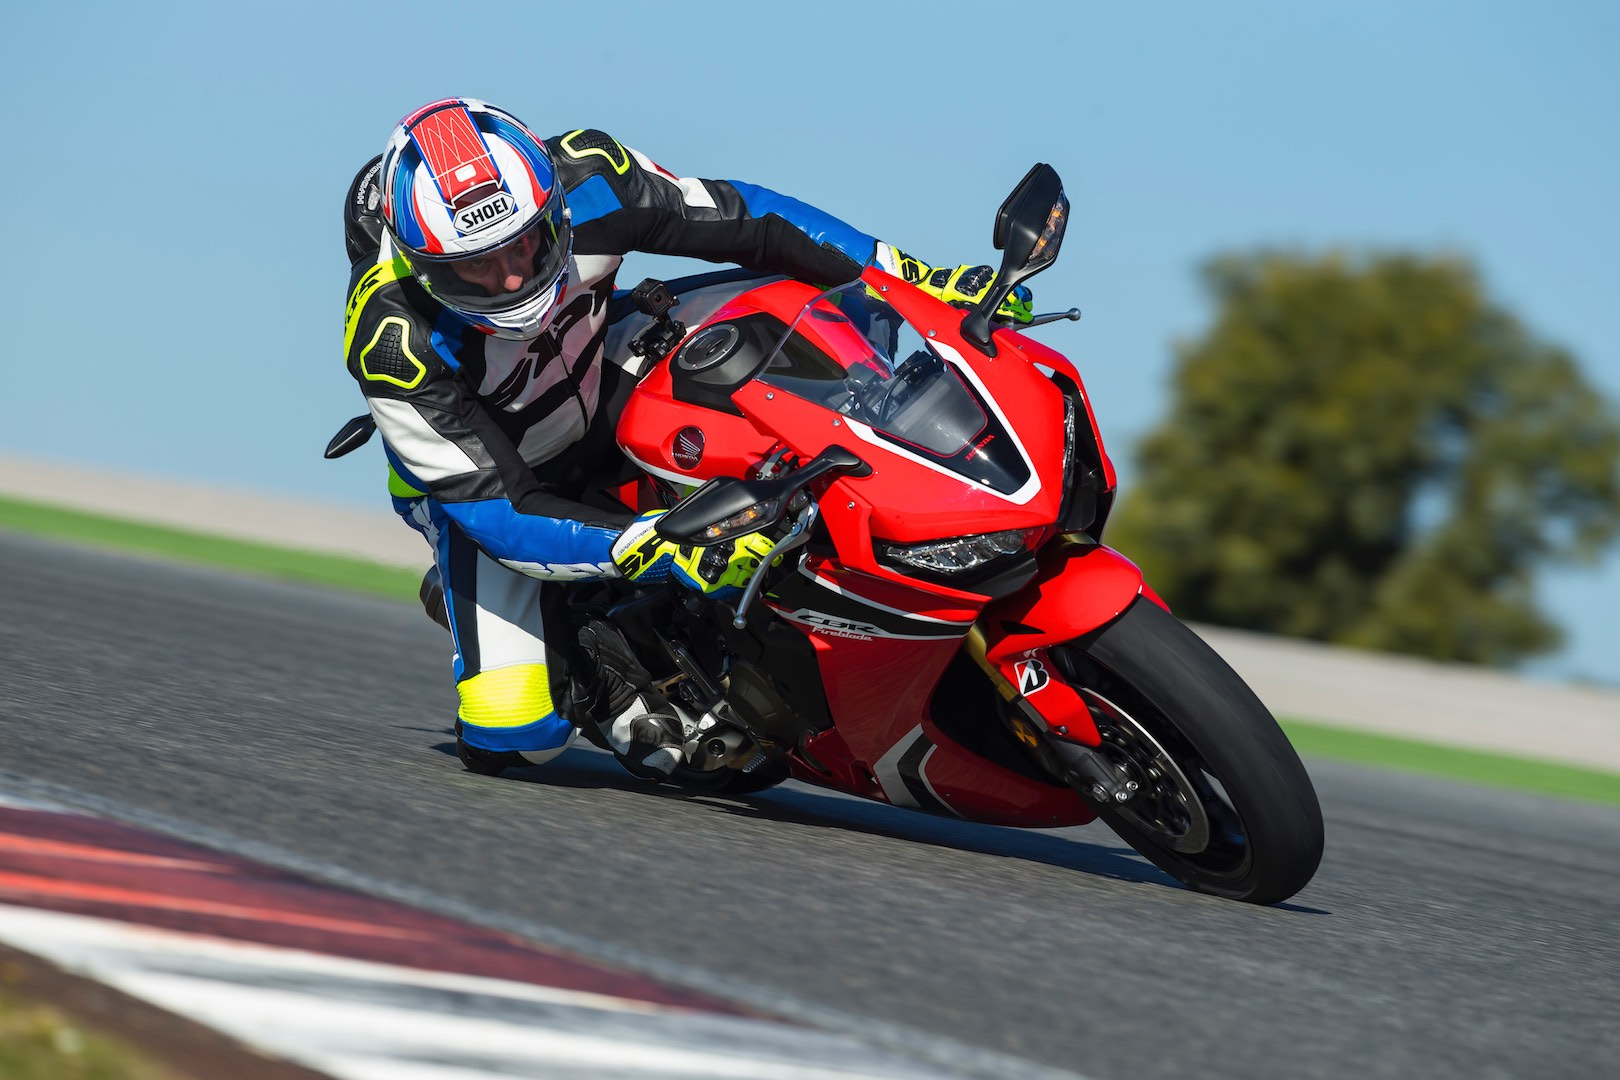 2017 Honda Cbr1000rr Sp Review The Rr Is Back Video